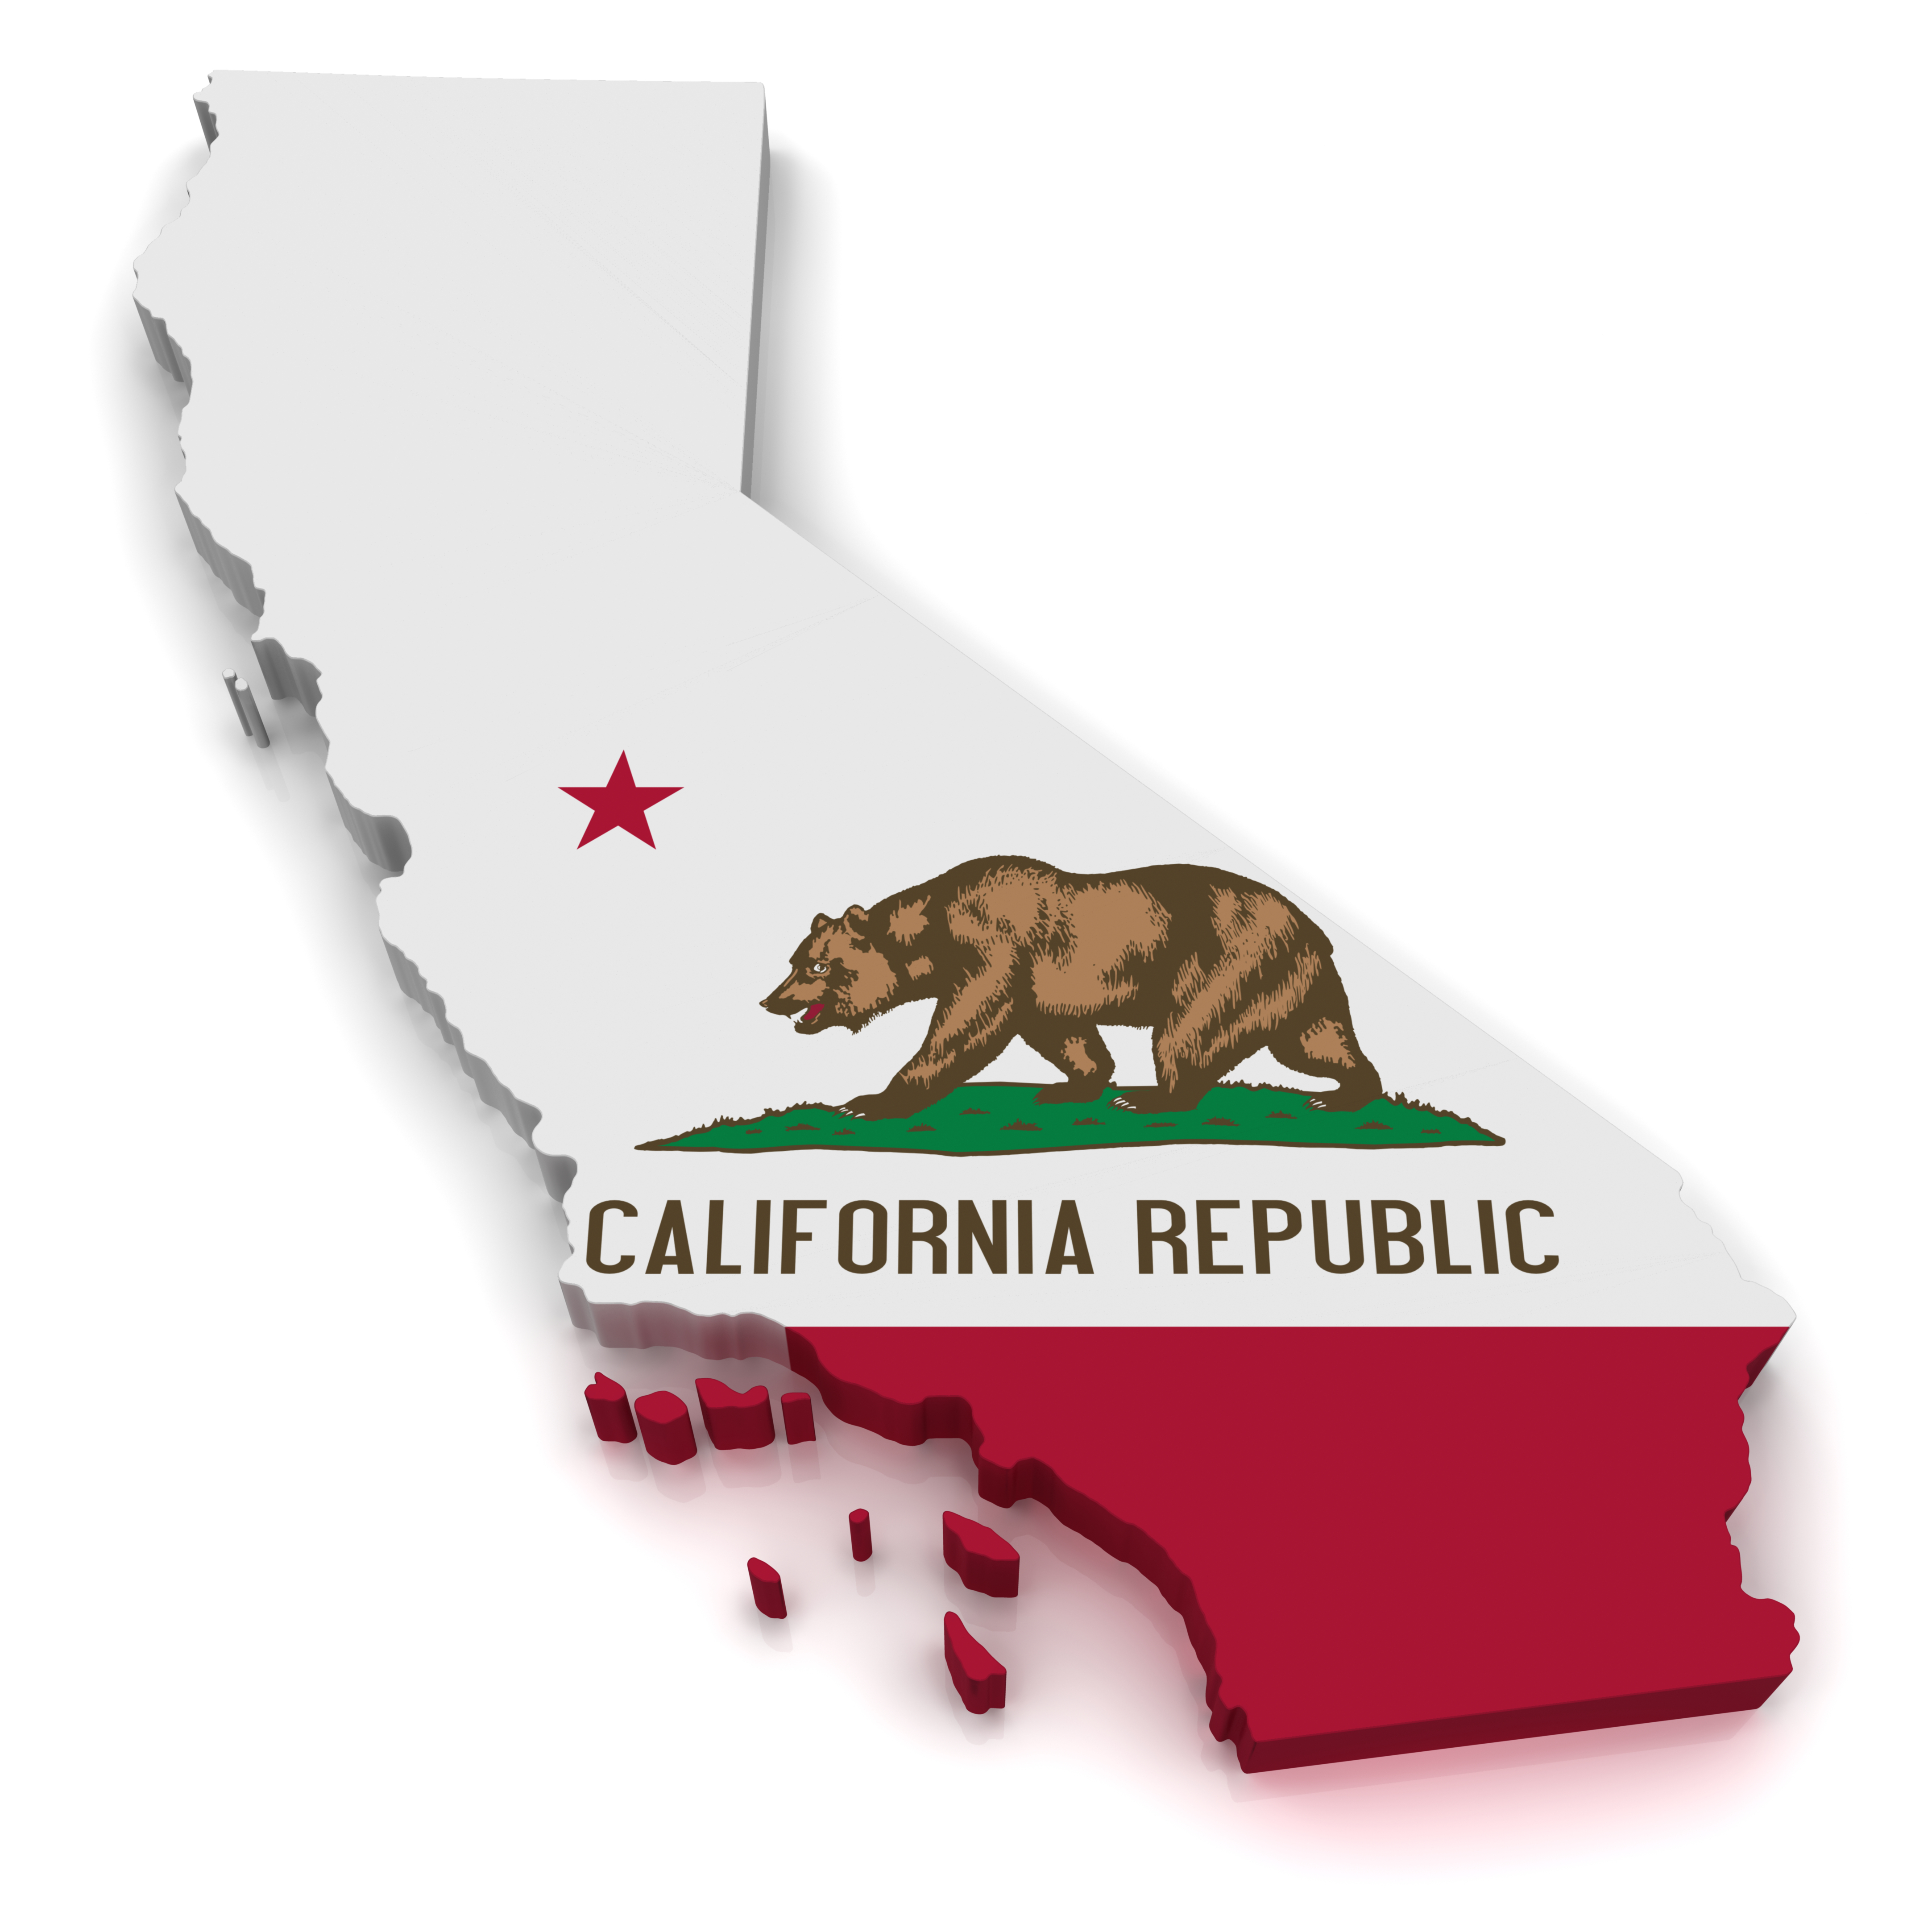 California Adherence Bill Passes Appropriations Committee